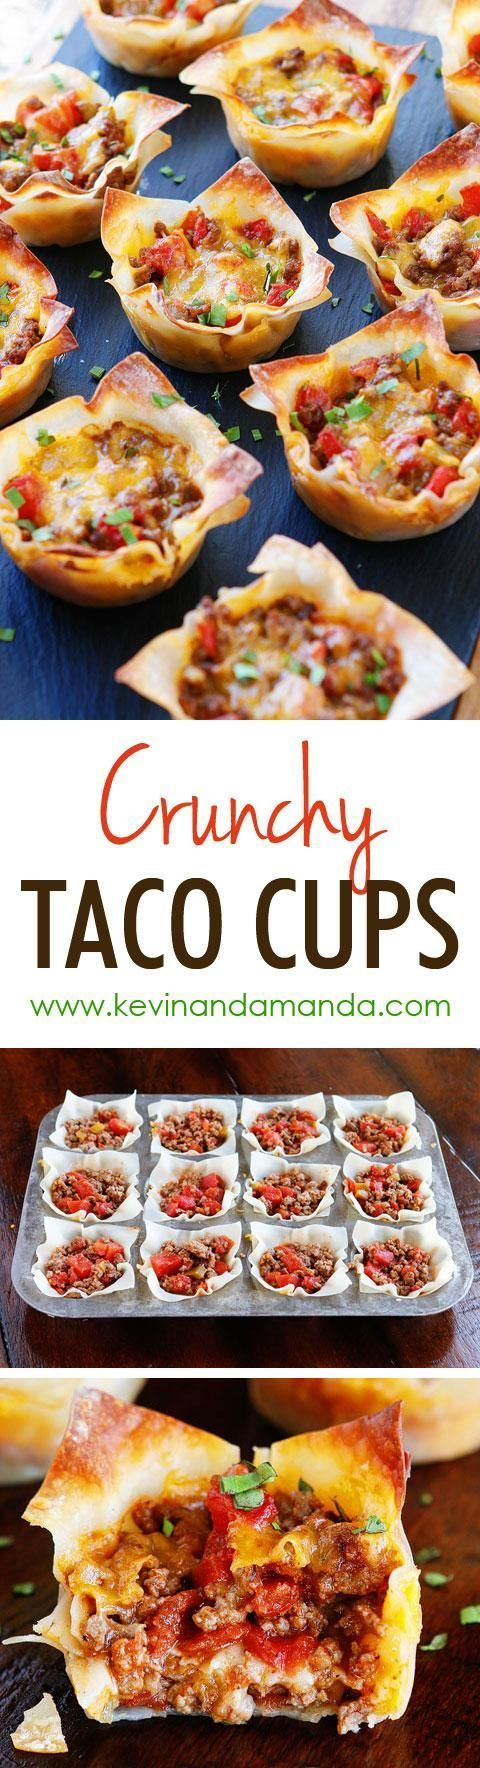 These homemade Crunchy Taco Cups are so fun and easy! Made in a muffin tin, these are a mess free, easy clean up weeknight meal!  The kids will love Taco Tuesday now, they'll be able to add their own ingredients and toppings! Crunchy, delicious, and fun to eat!